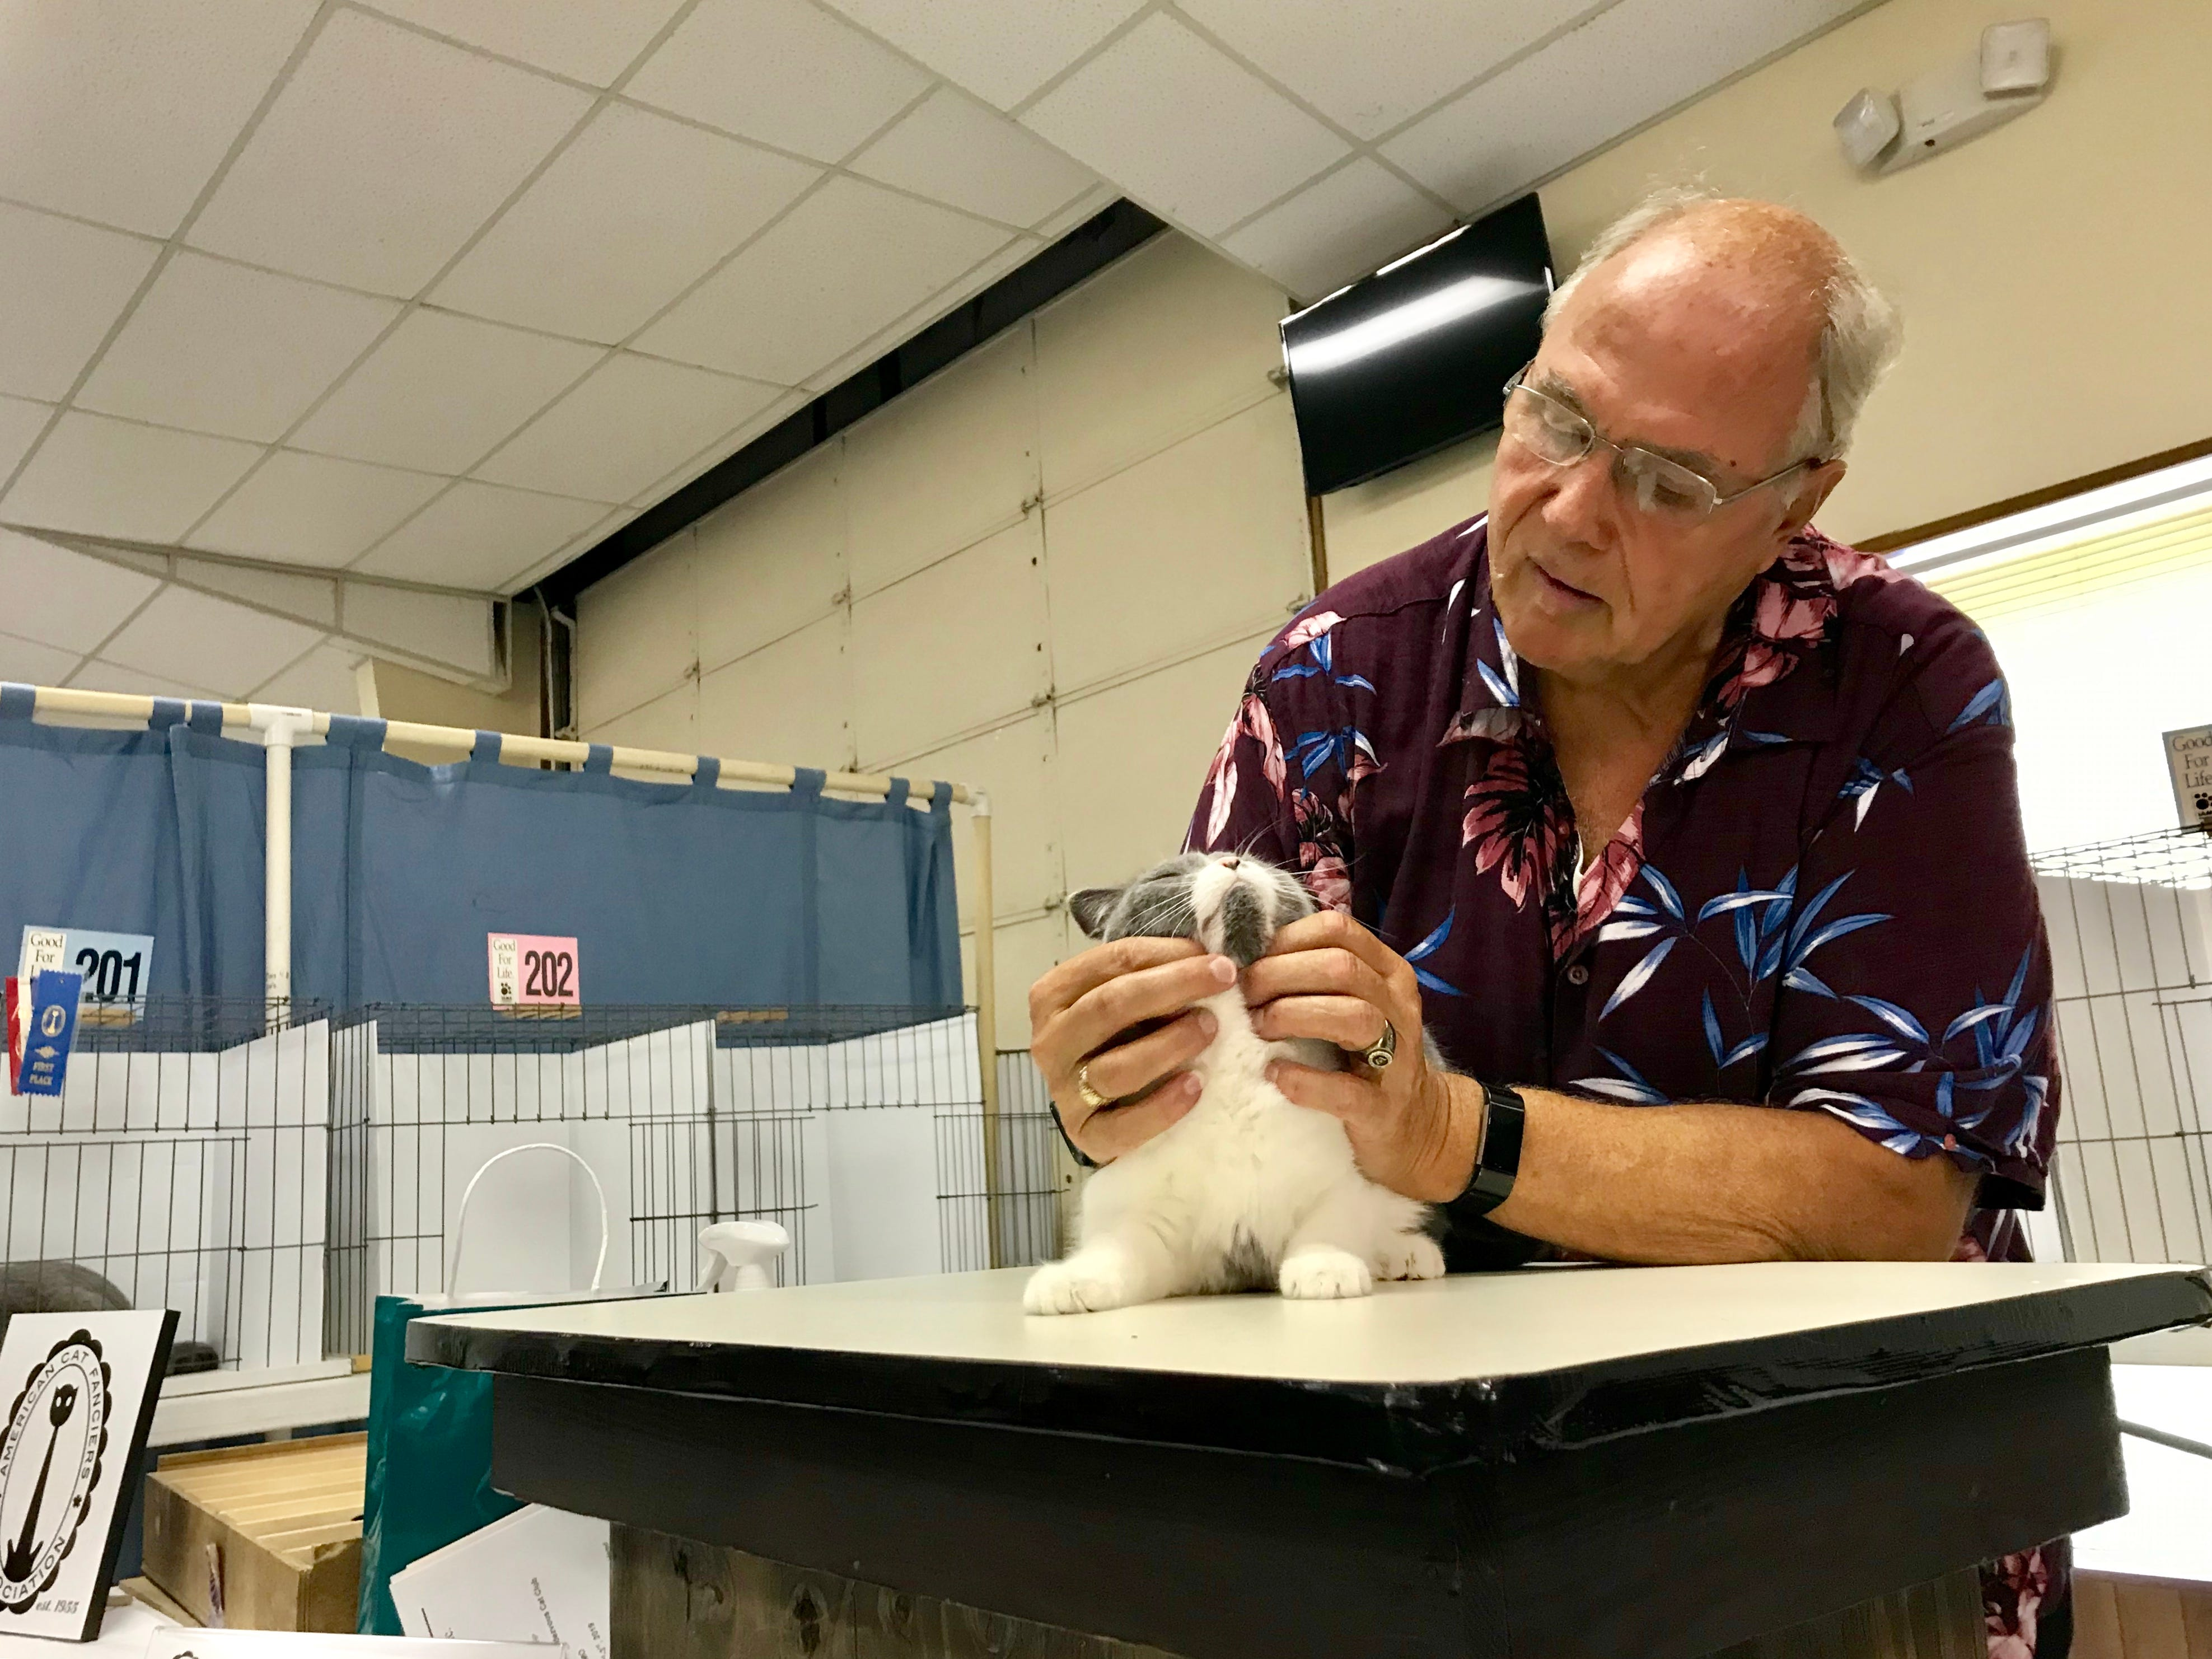 Donald Finger judges a feline during a cat show March 3 at the Branson-Hollister Lions Club.